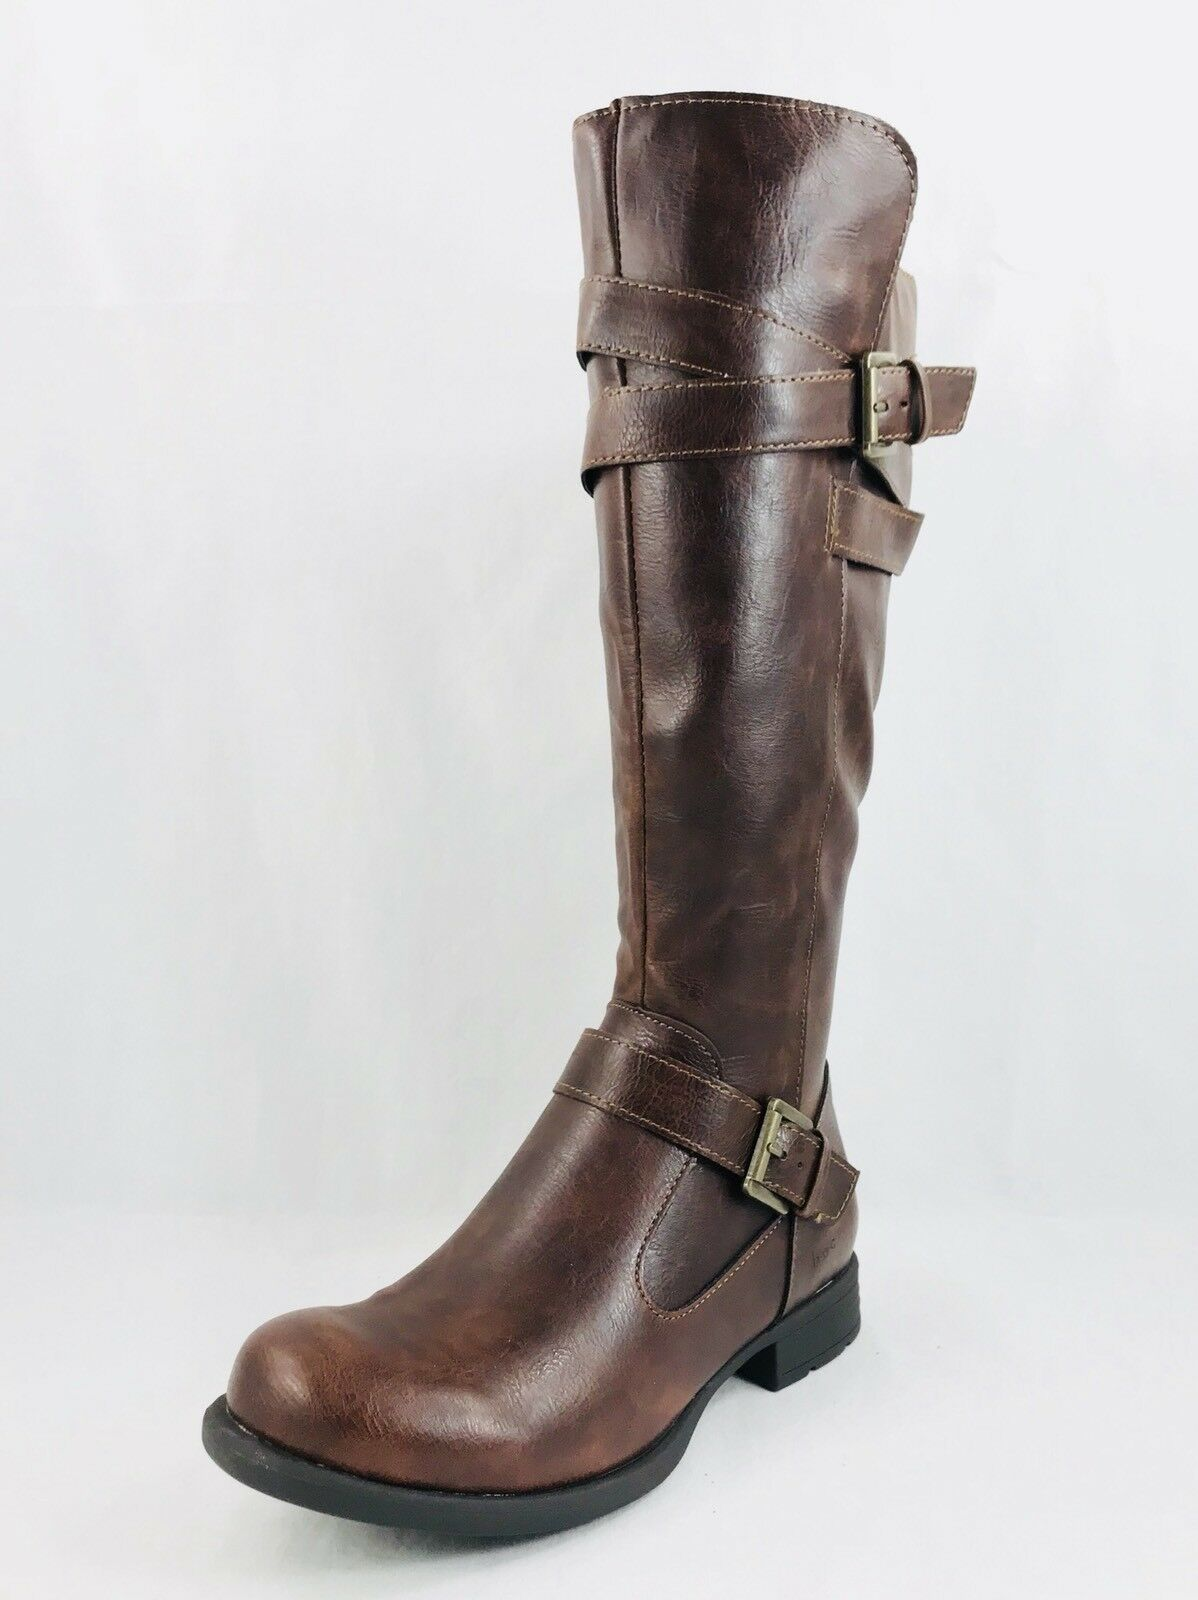 Born Concepts B.O.C. Mays Riding Boots Side Zip Brown Women Sz 6.5